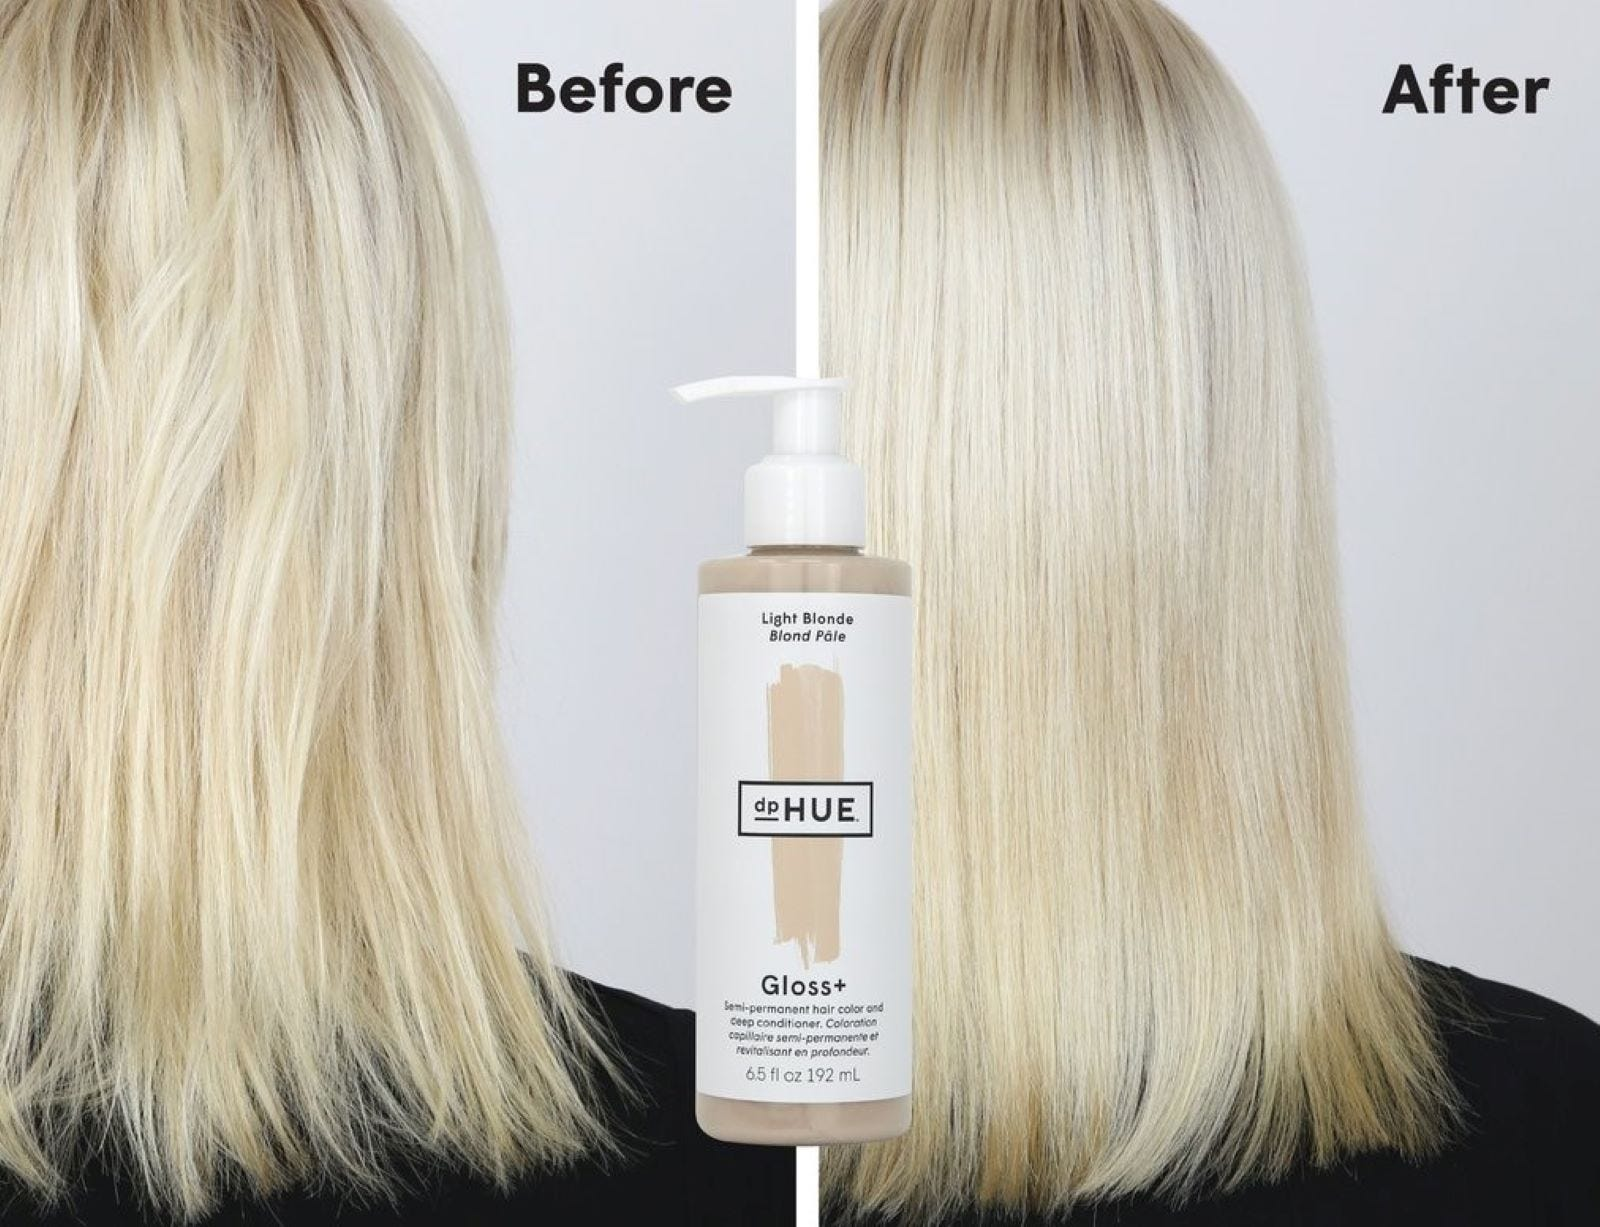 Before and after comparison of a woman's blonde hair with a bottle of Light Blonde dpHUE Gloss+ in the middle.